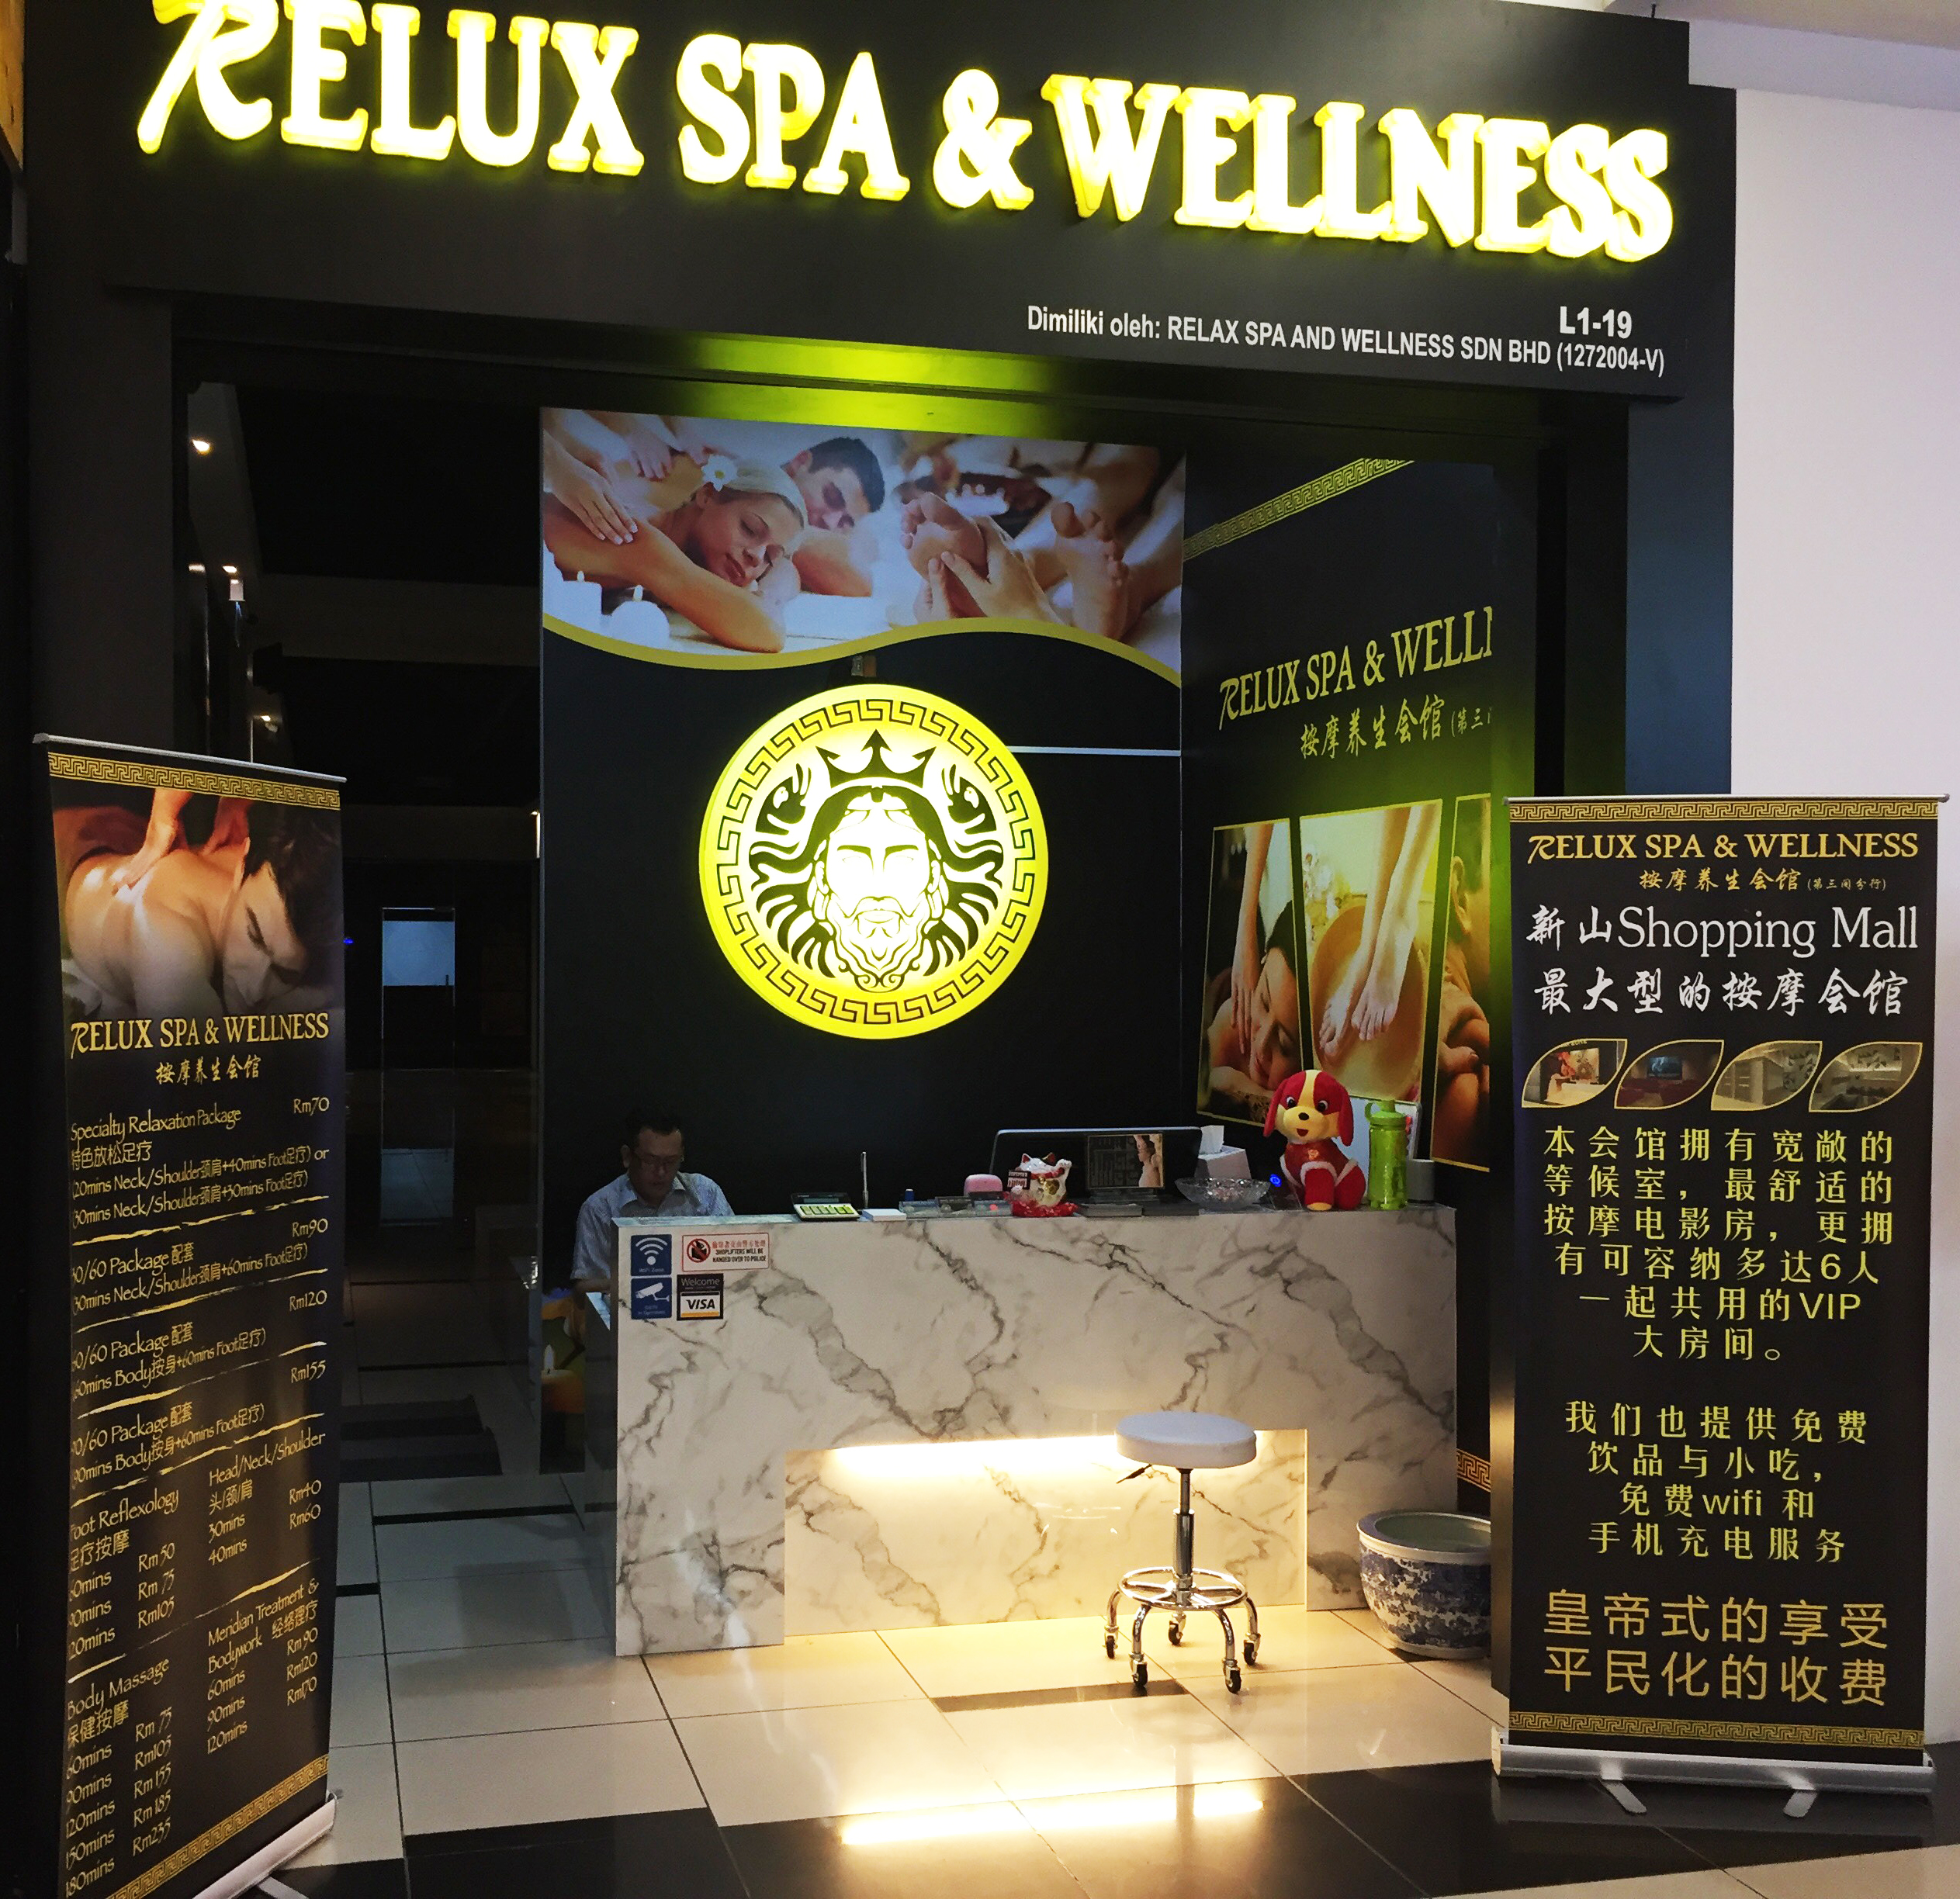 Relux Spa & Wellness